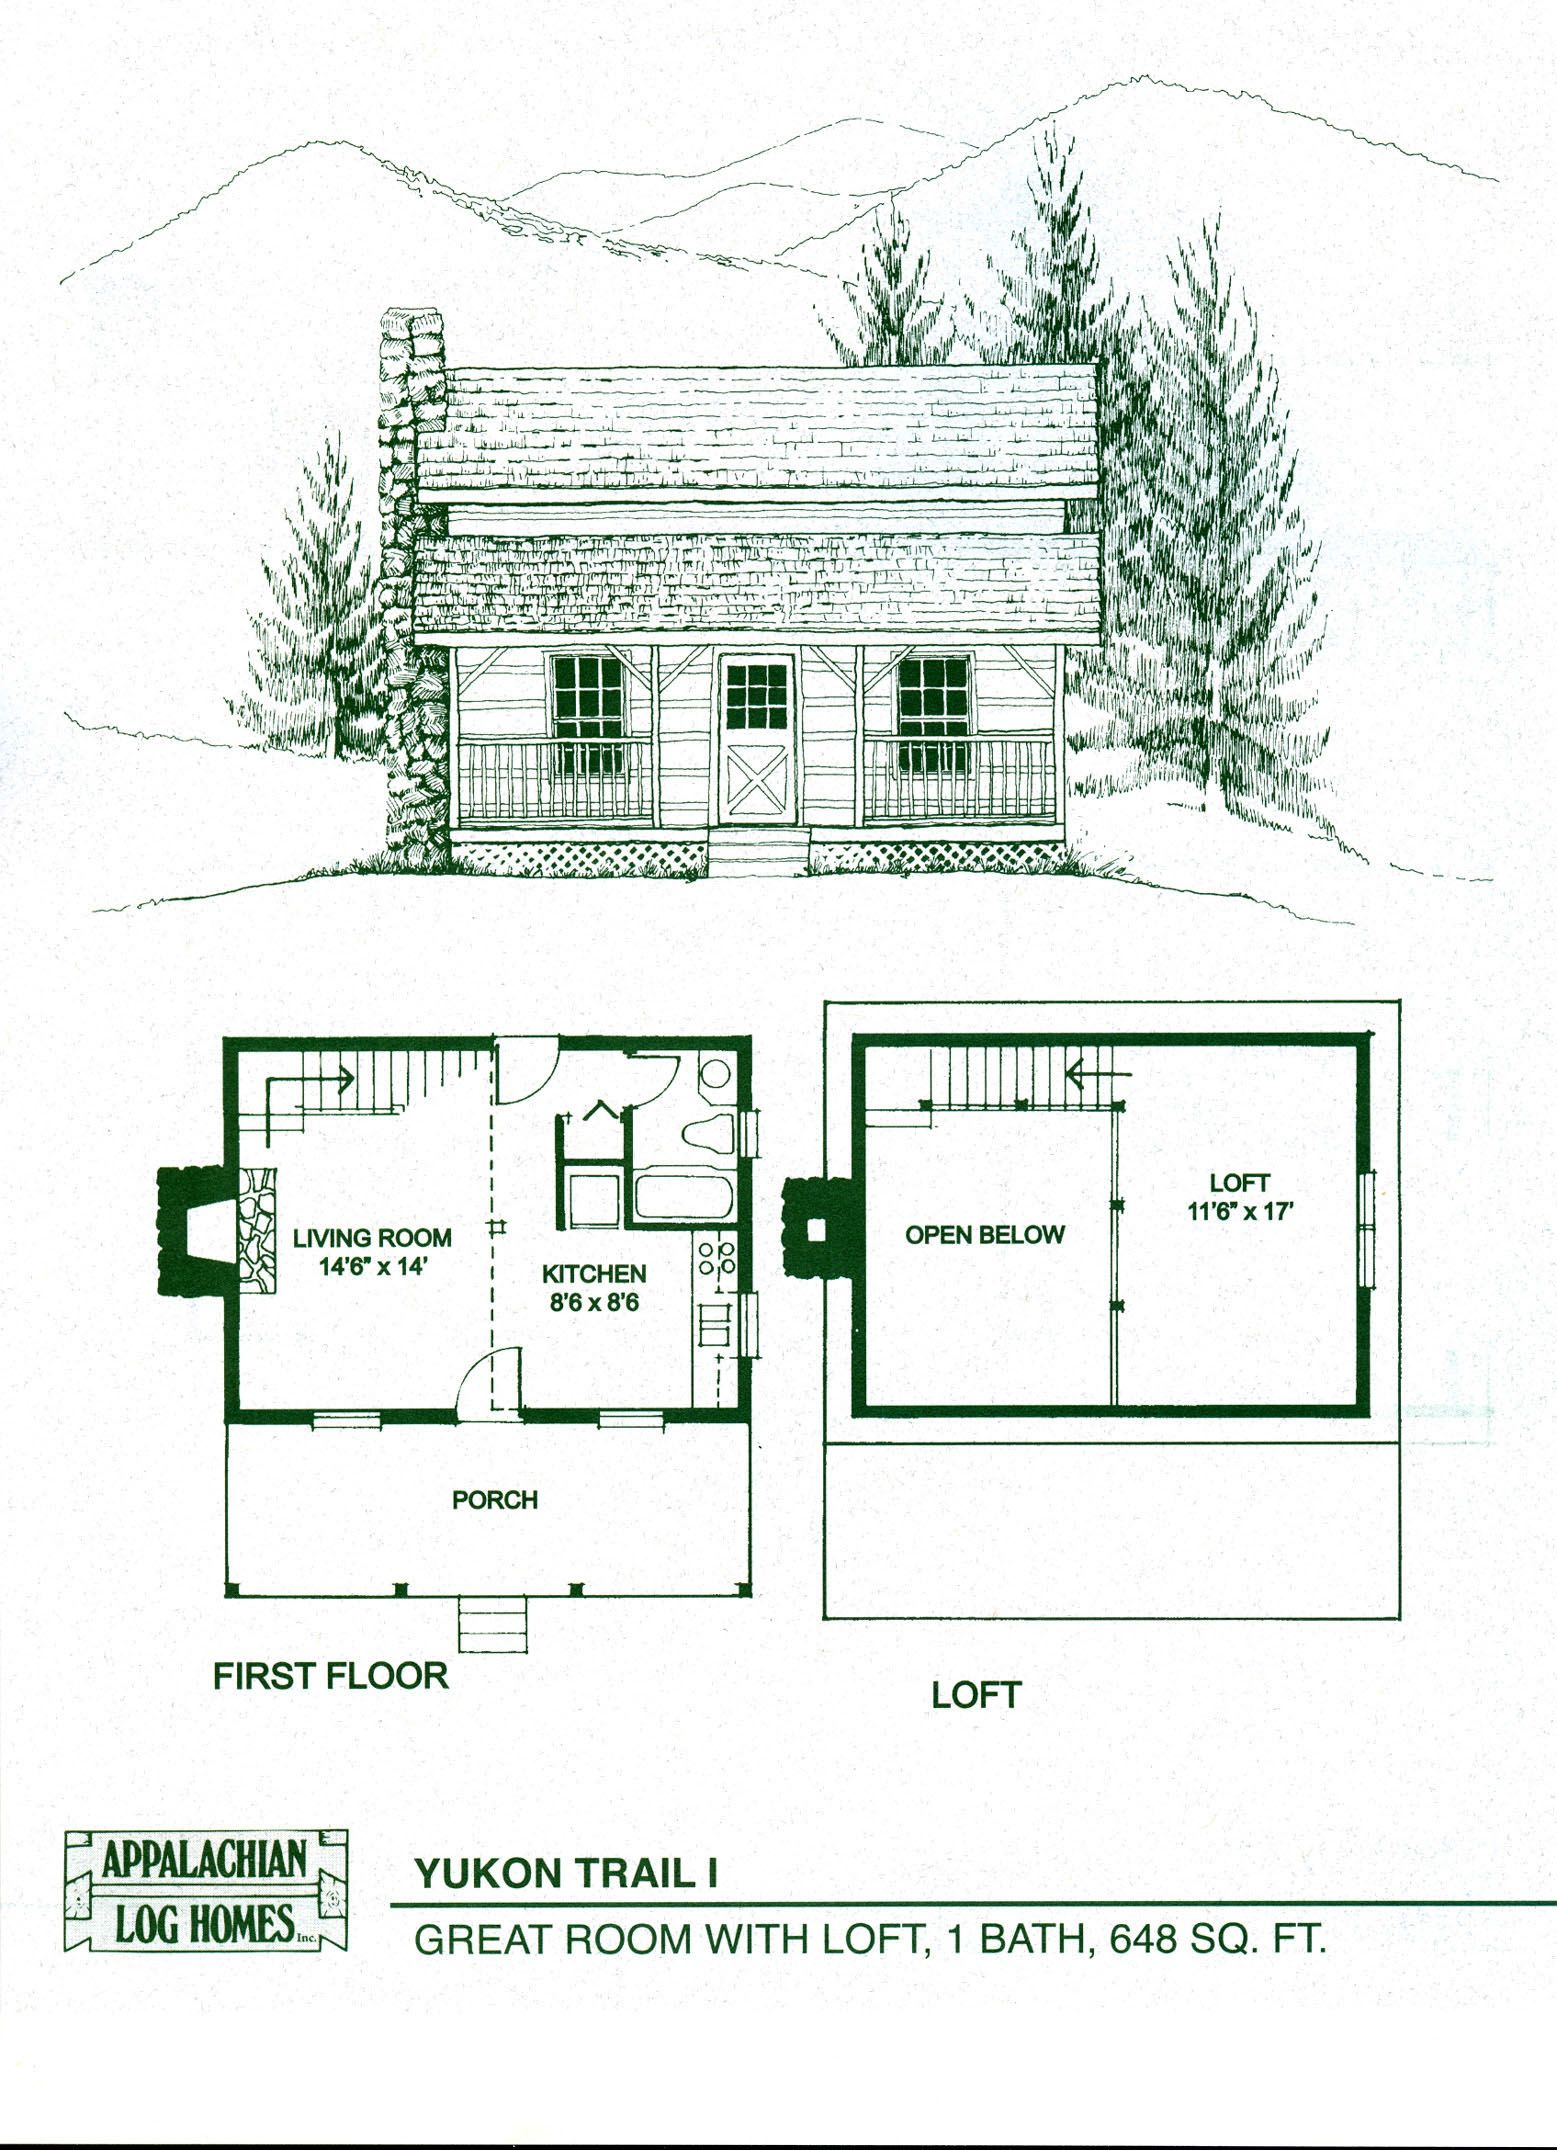 Log home floor plans log cabin kits appalachian log homes crafts and sewing ideas Cabin house plans